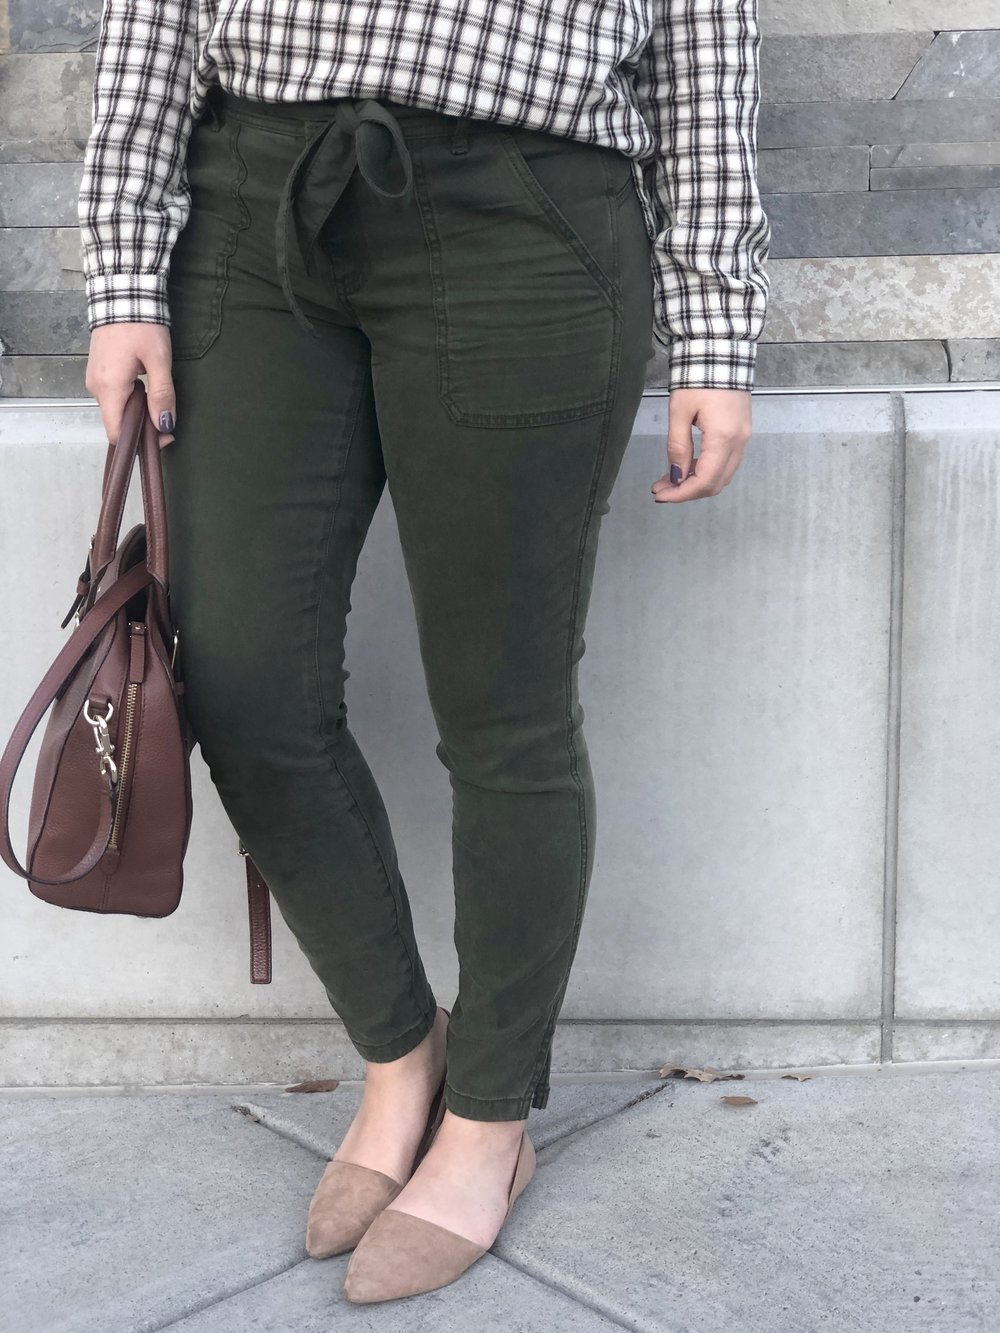 The most flattering chinos! They would be great for a business casual work setting as well!